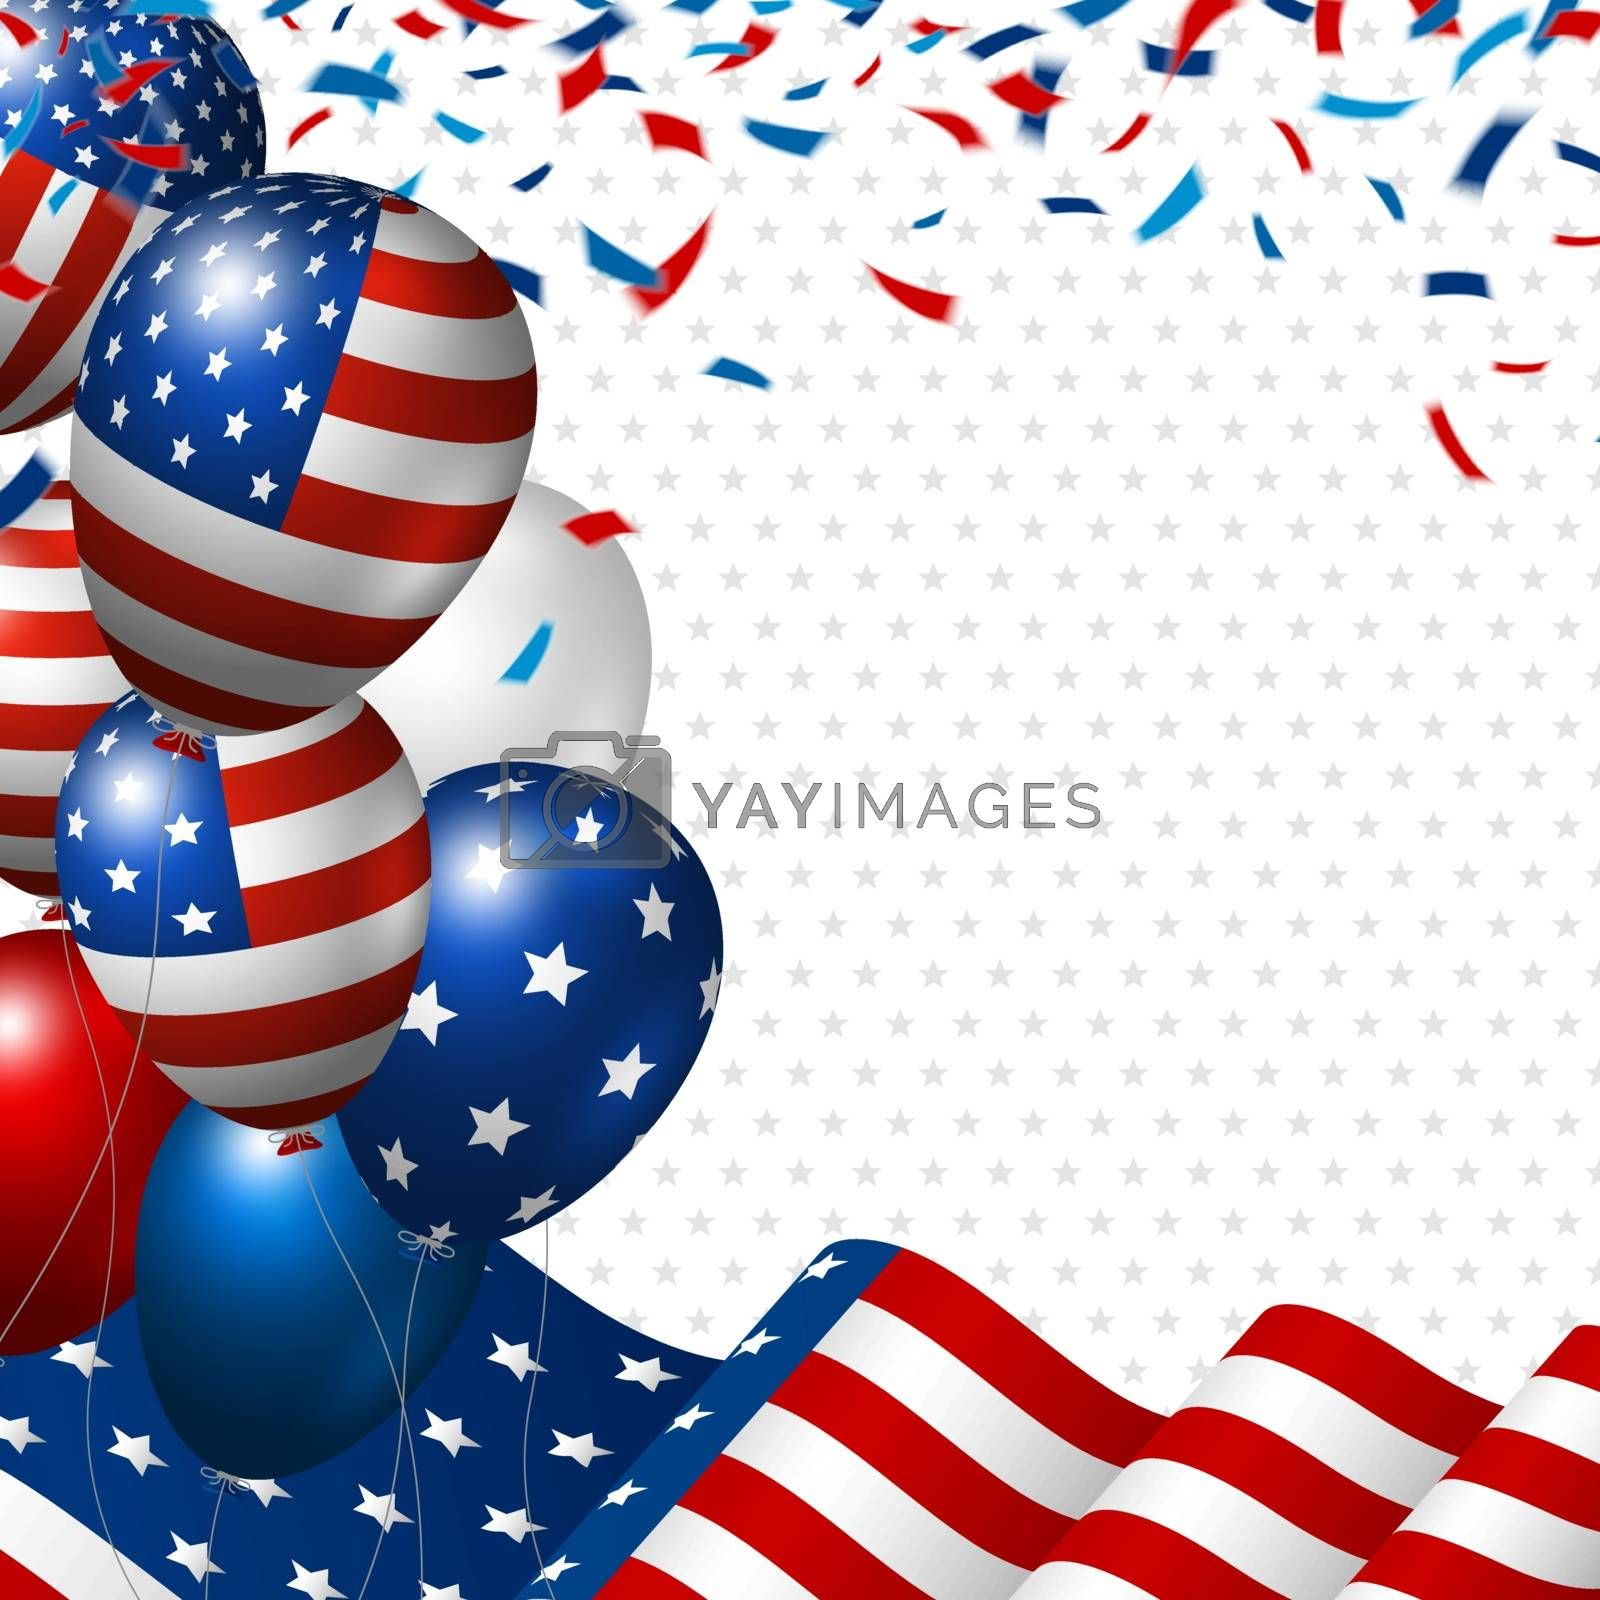 American flag and balloon with copy space banner USA 4th of july independence day vector illustration